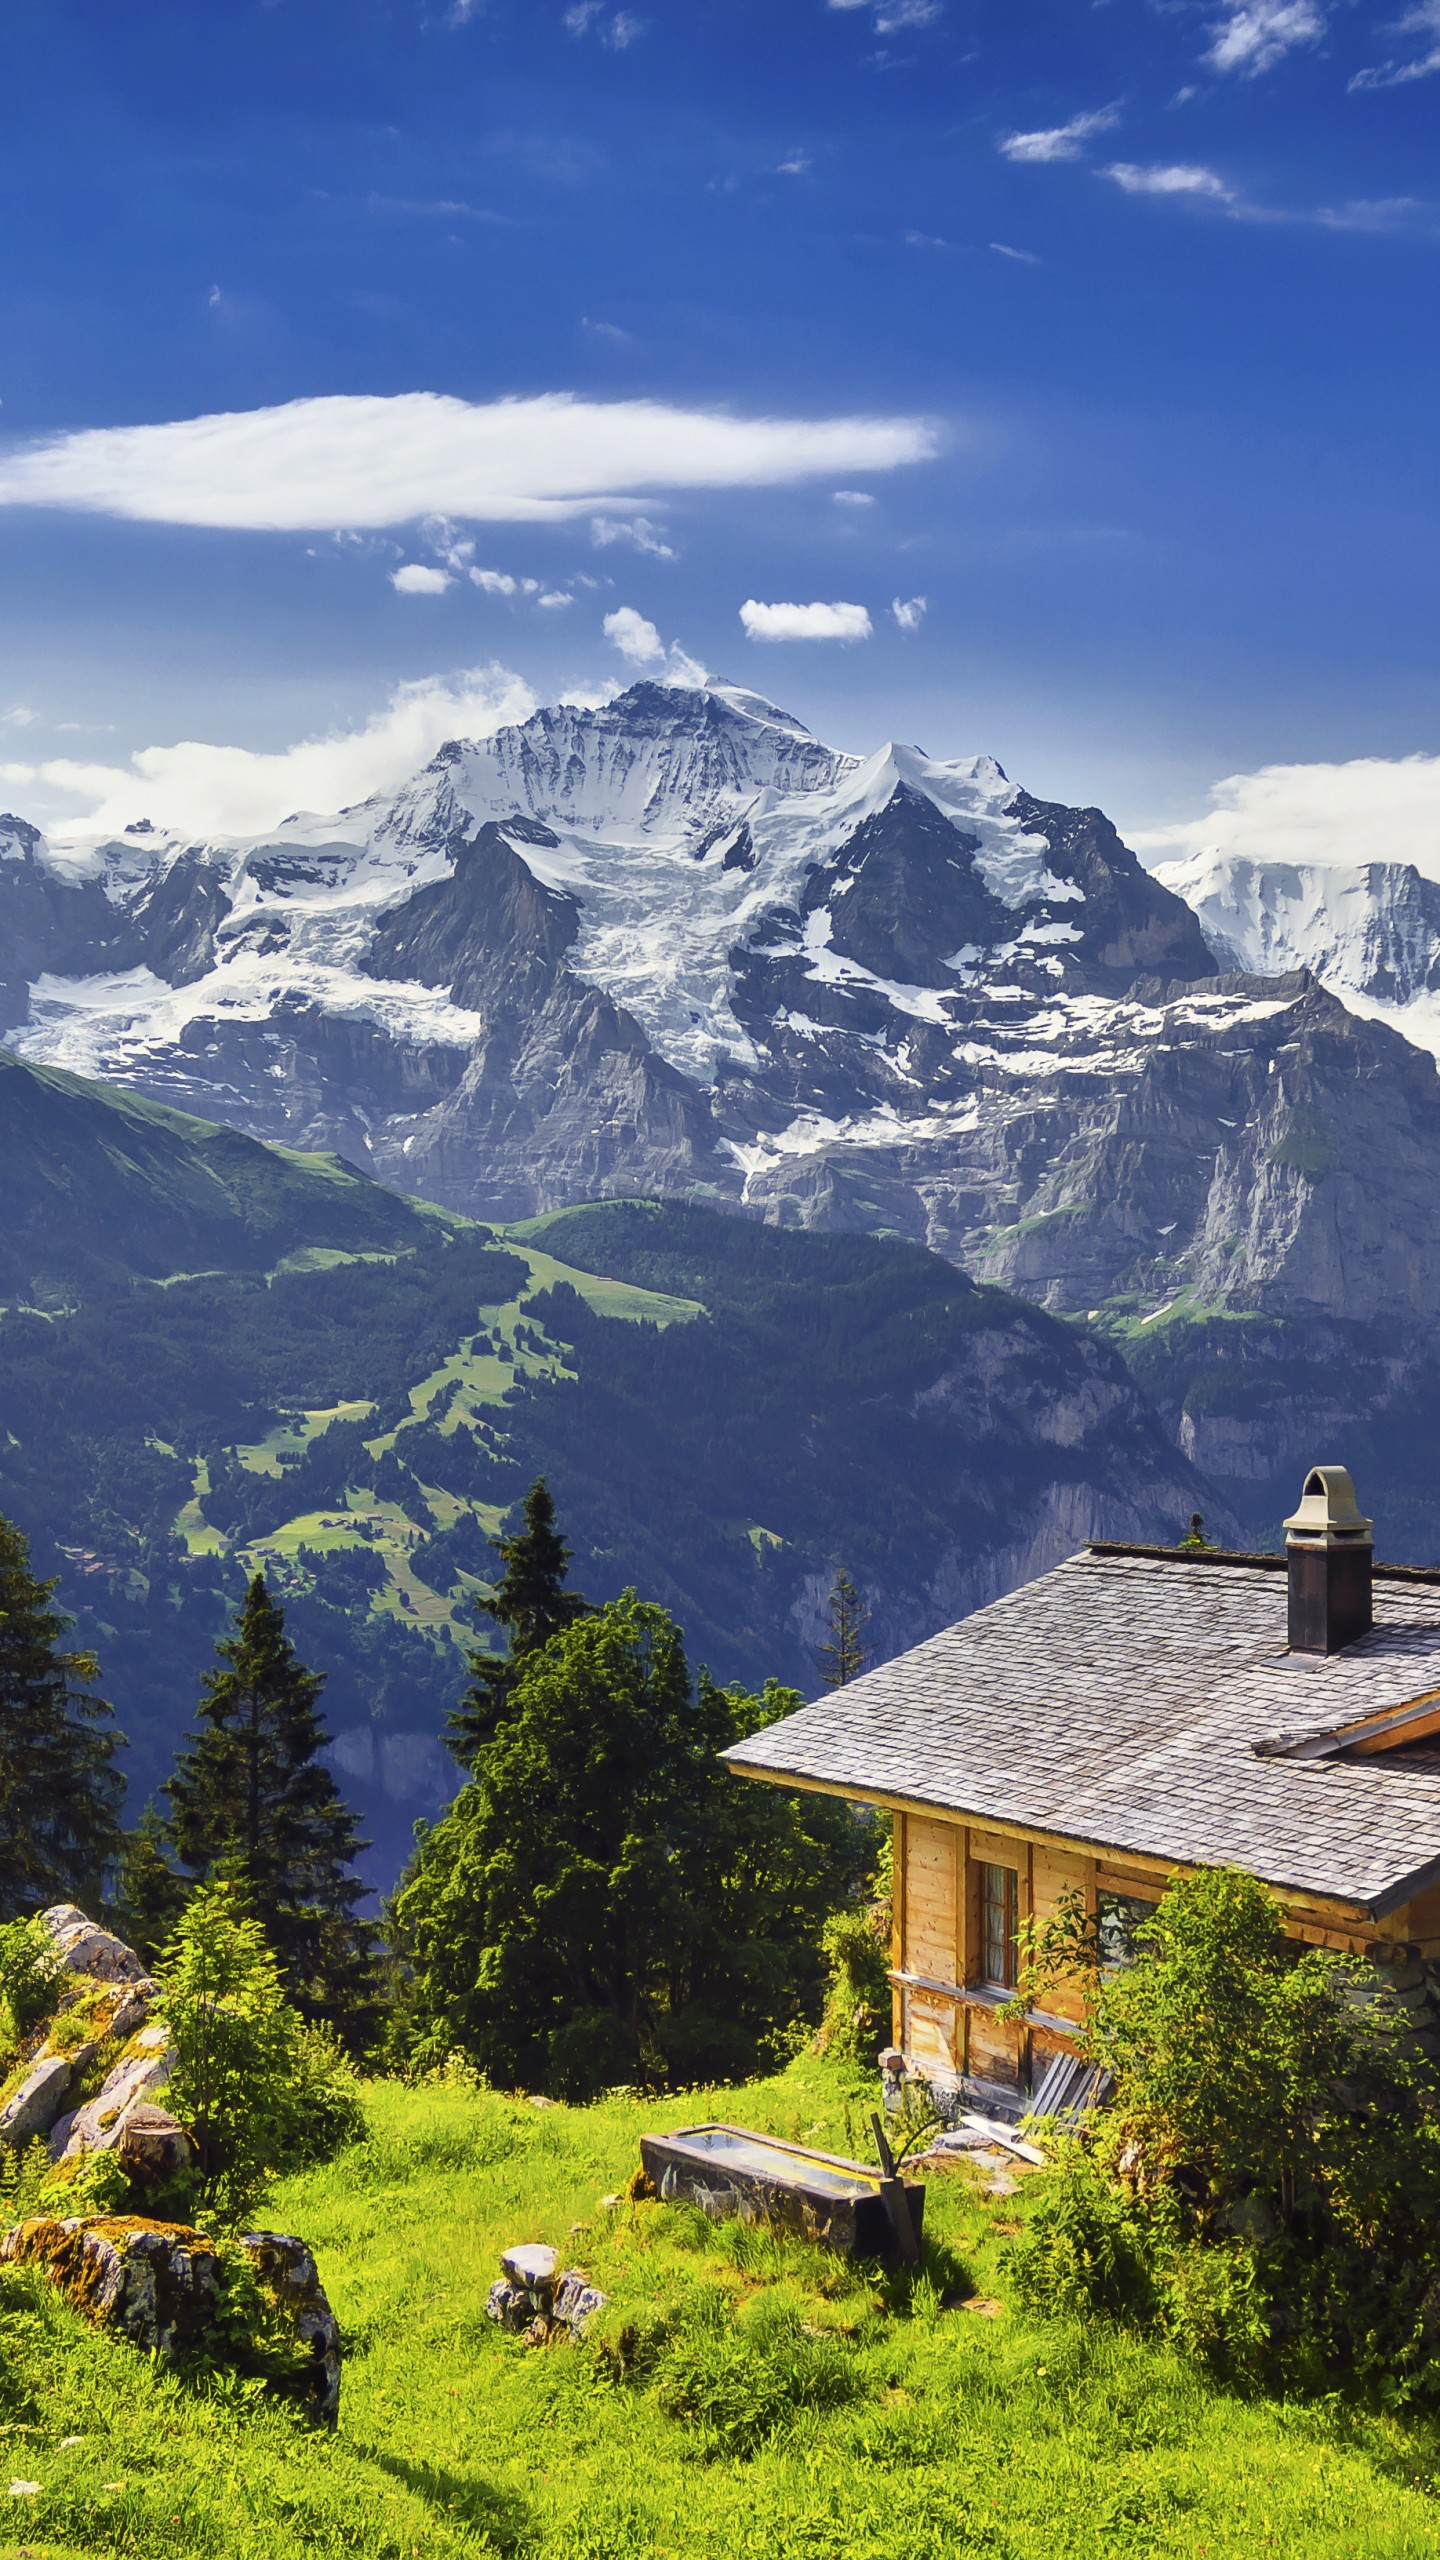 Wallpaper Nature 8k: Wallpaper Switzerland, 5k, 4k Wallpaper, 8k, Mountains